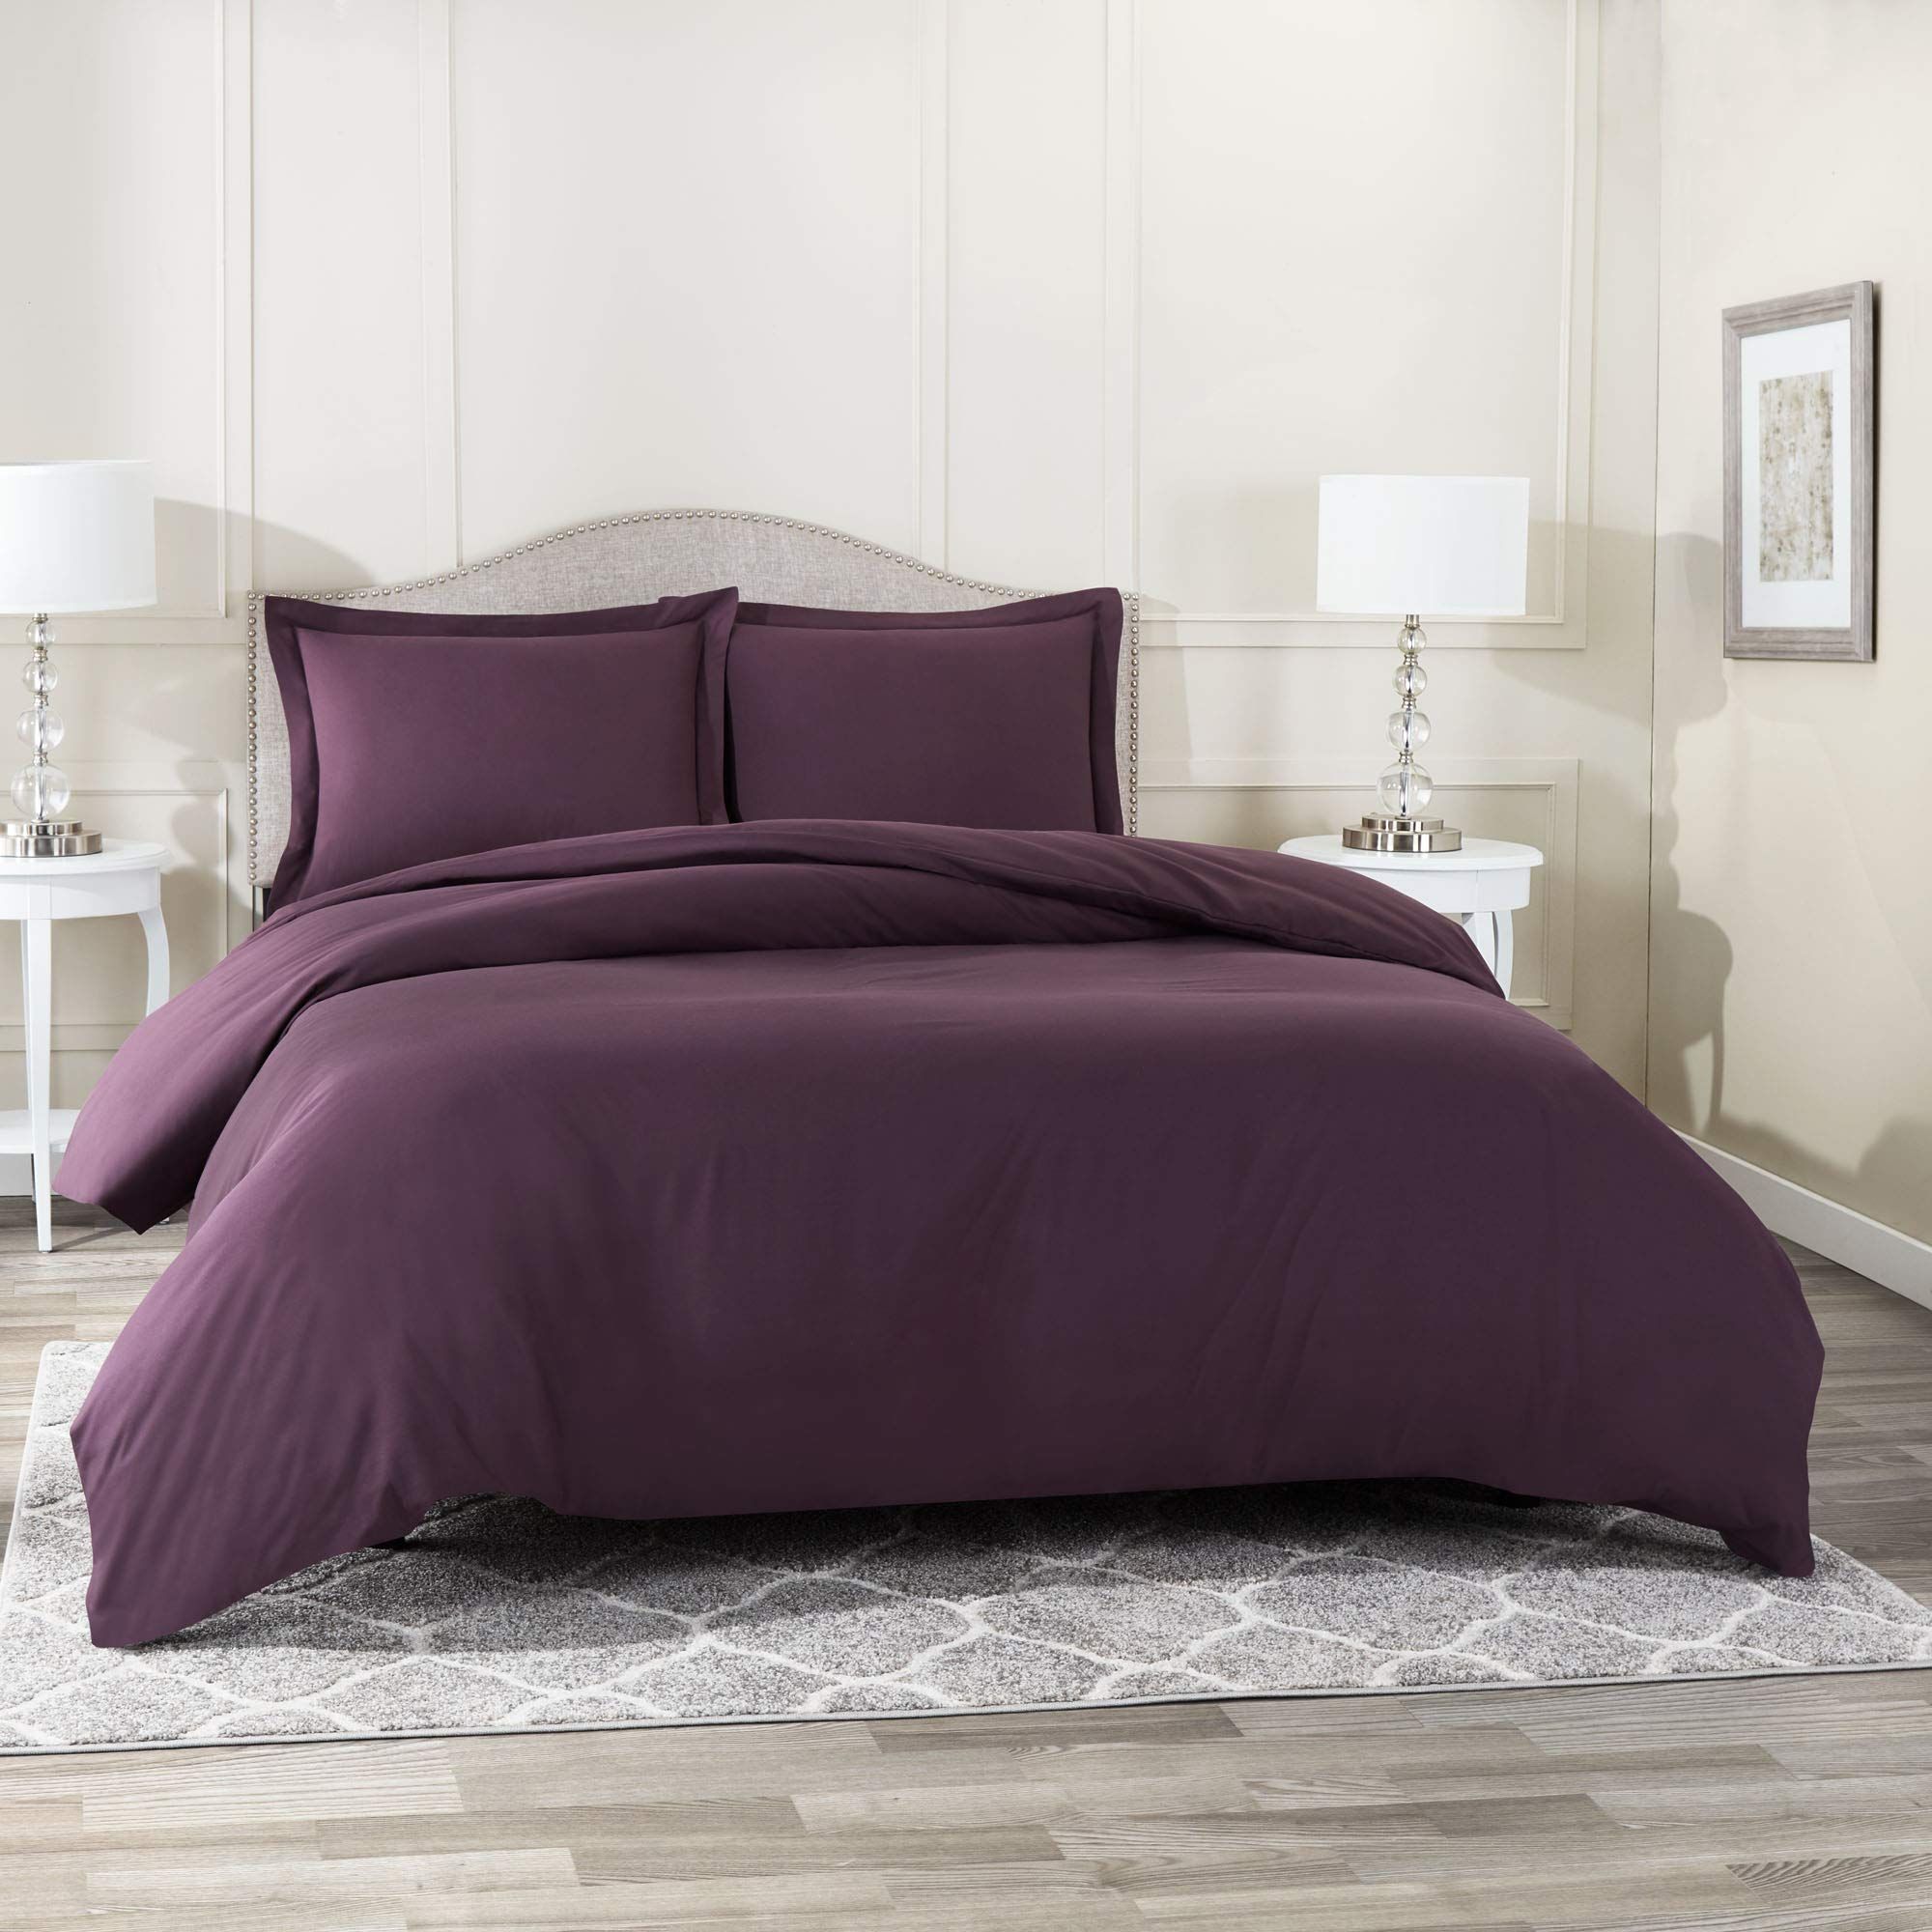 Nestl Bedding Duvet Cover with Fitted Sheet 3 Piece Set - Soft Double Brushed Microfiber Hotel Collection - Comforter Cover with Button Closure, Fitted Sheet, 1 Pillow Sham, Twin - Eggplant Purple